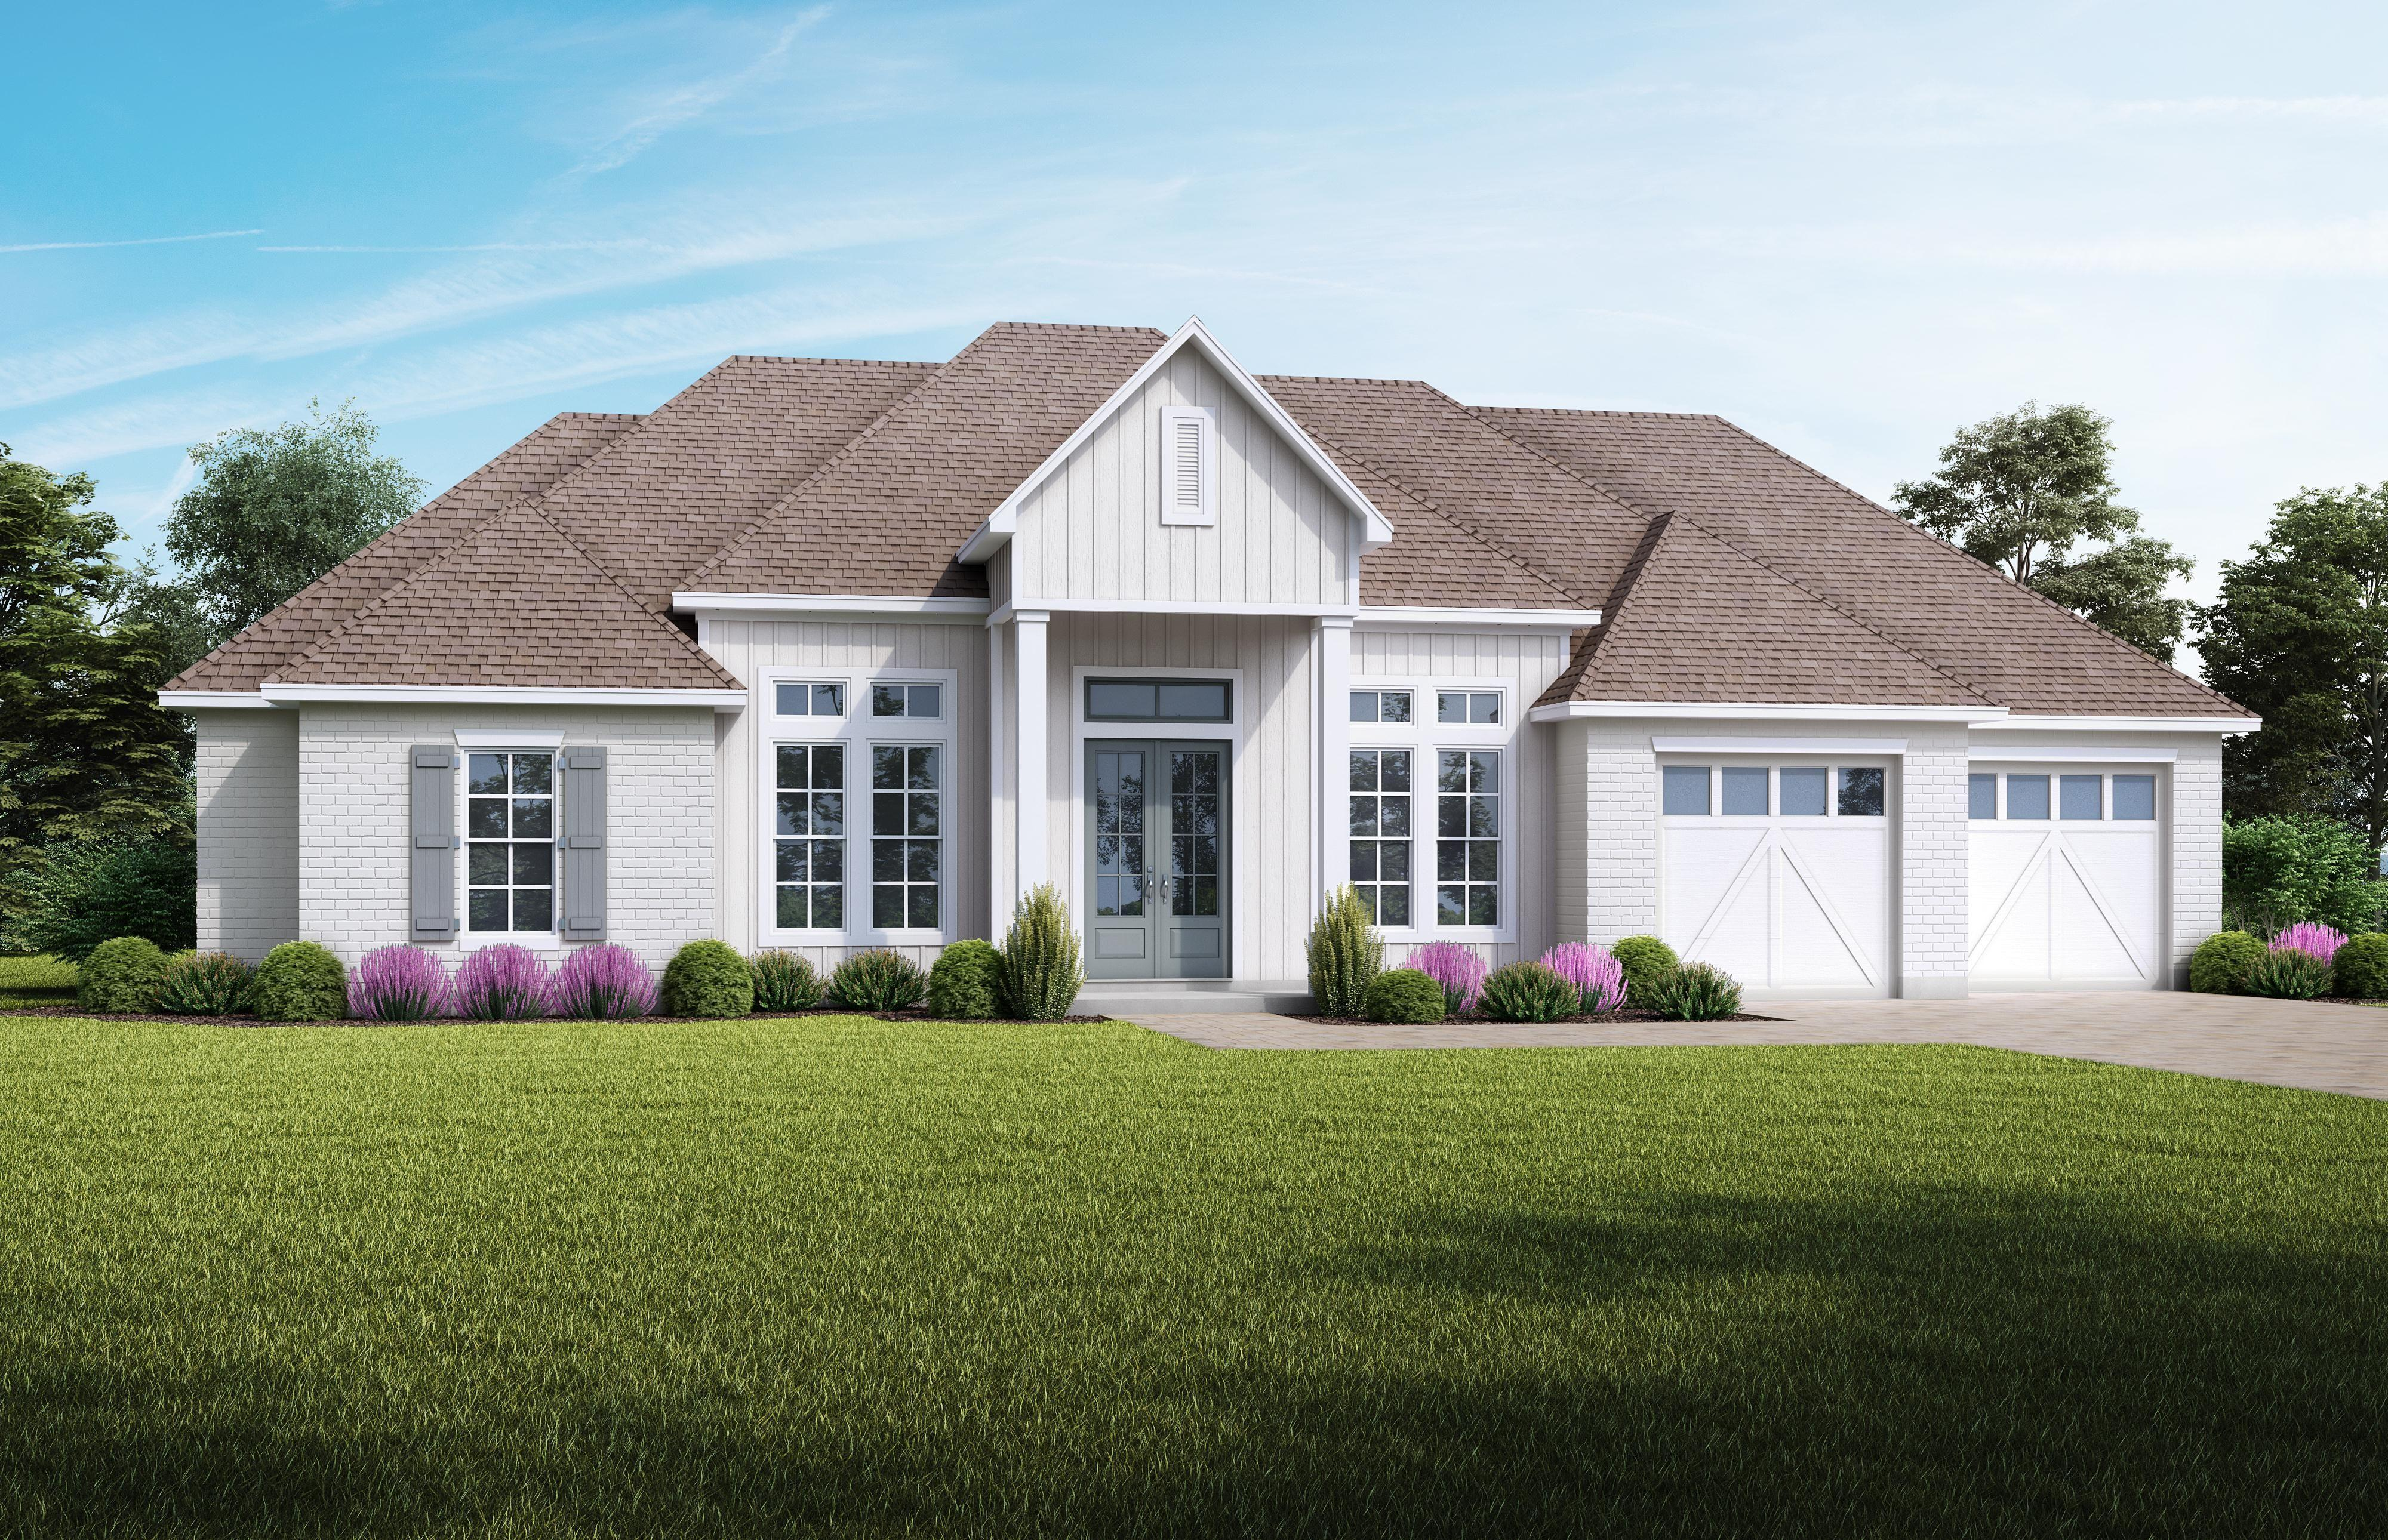 Exterior featured in the AUDUBON-AH65 By Audubon Homes in New Orleans, LA